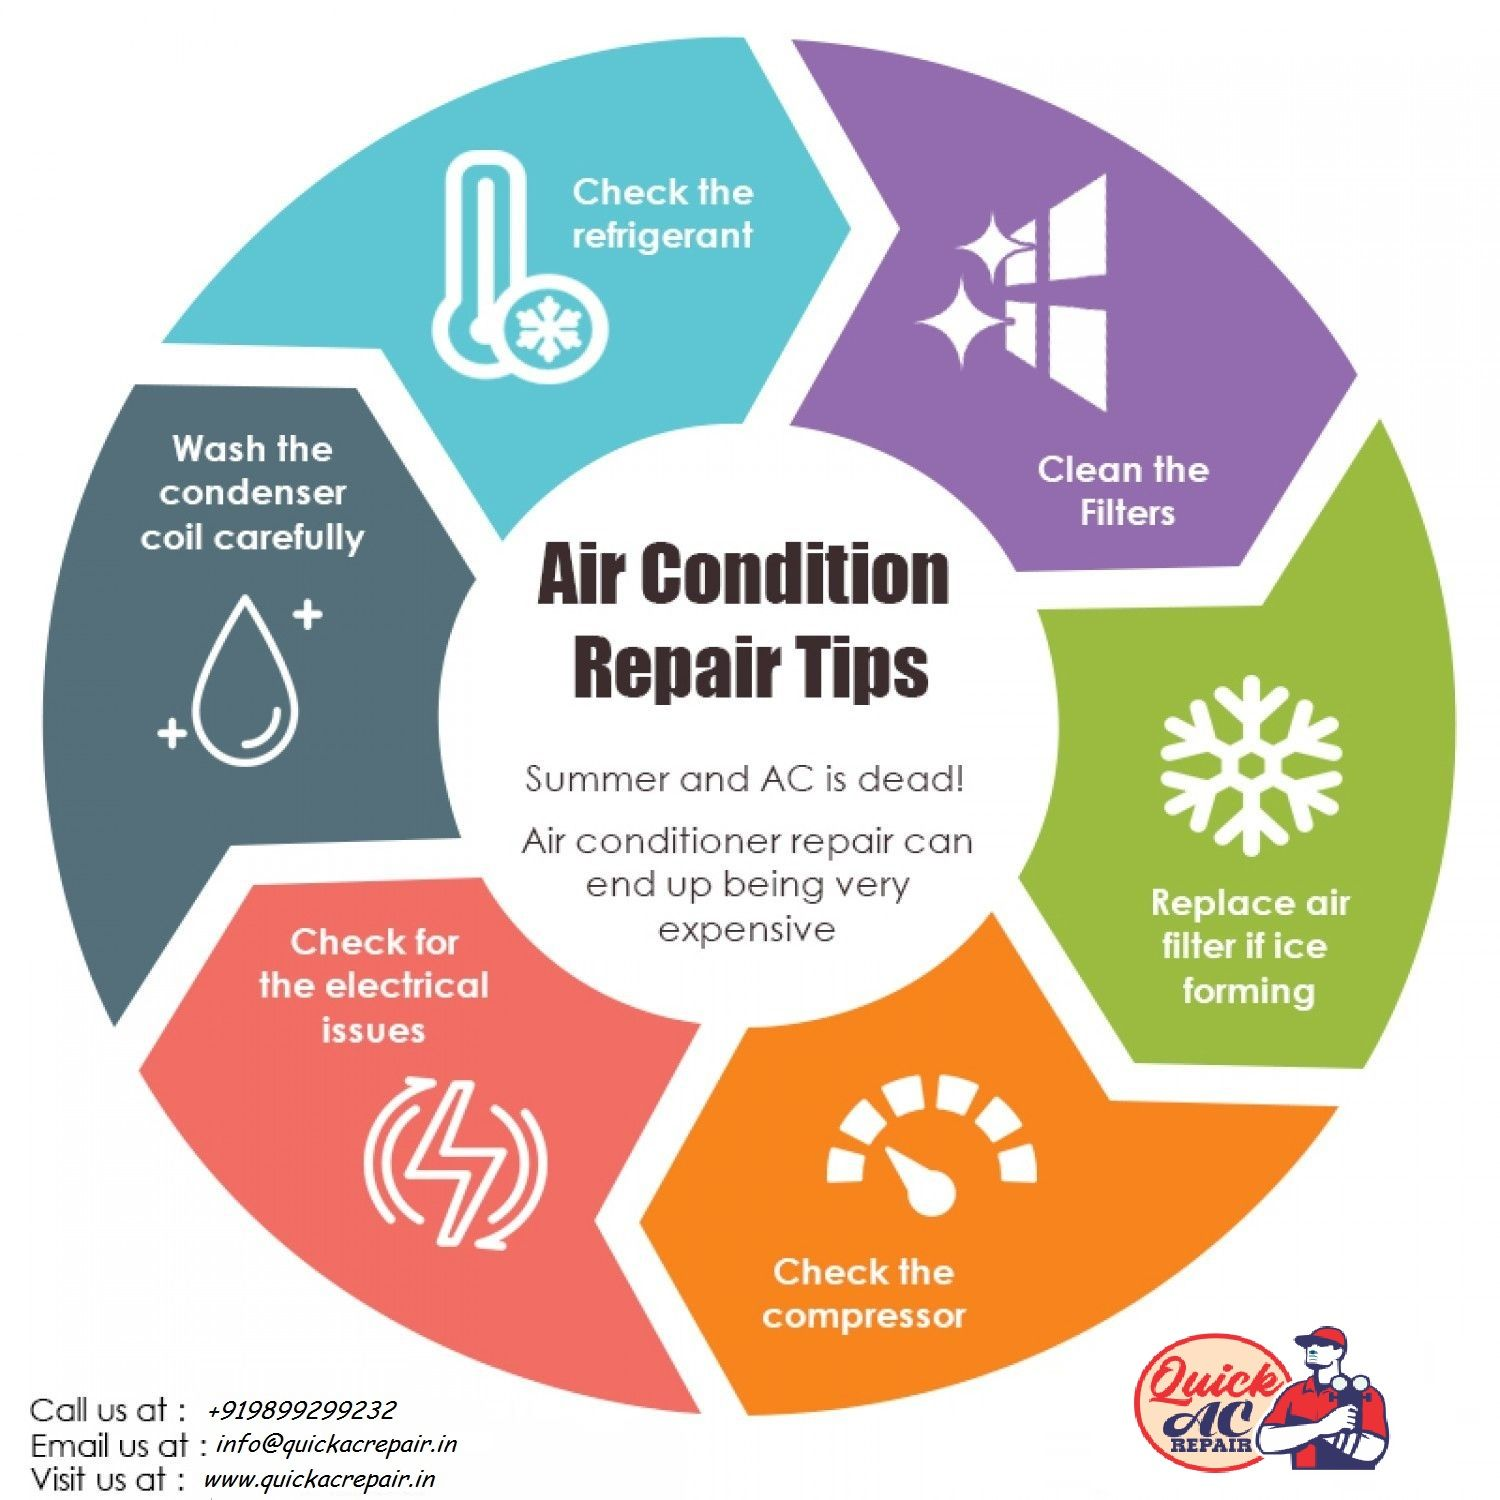 AirConditioner Repair Tips in 2020 Air conditioning